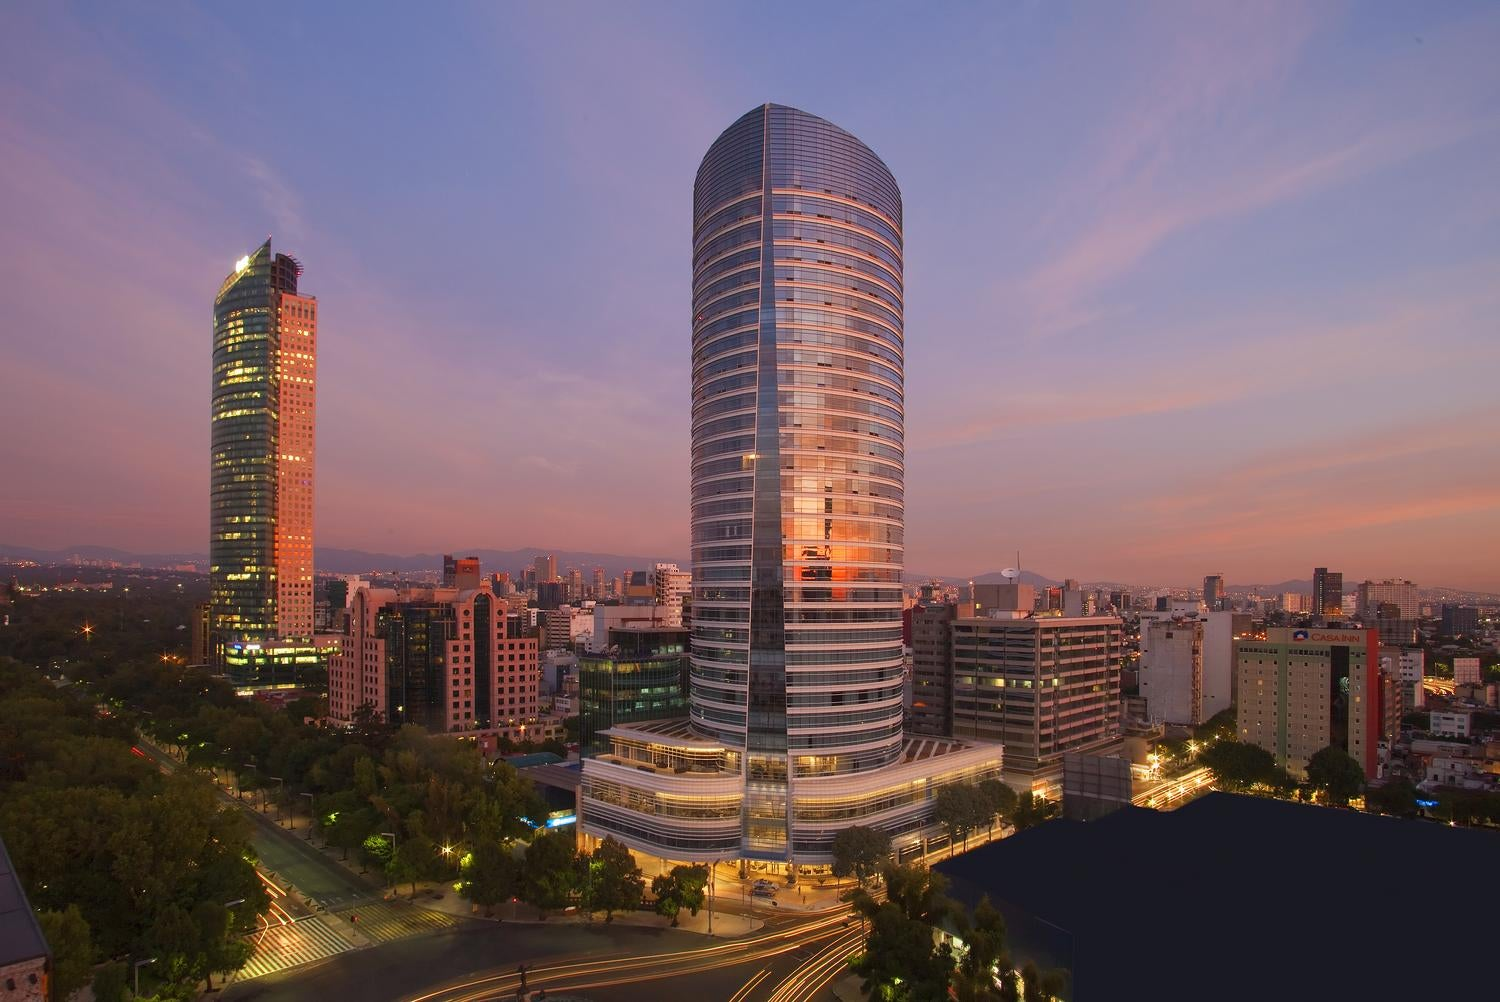 The st regis mexico city 39 s room key now opens doors to for The st regis